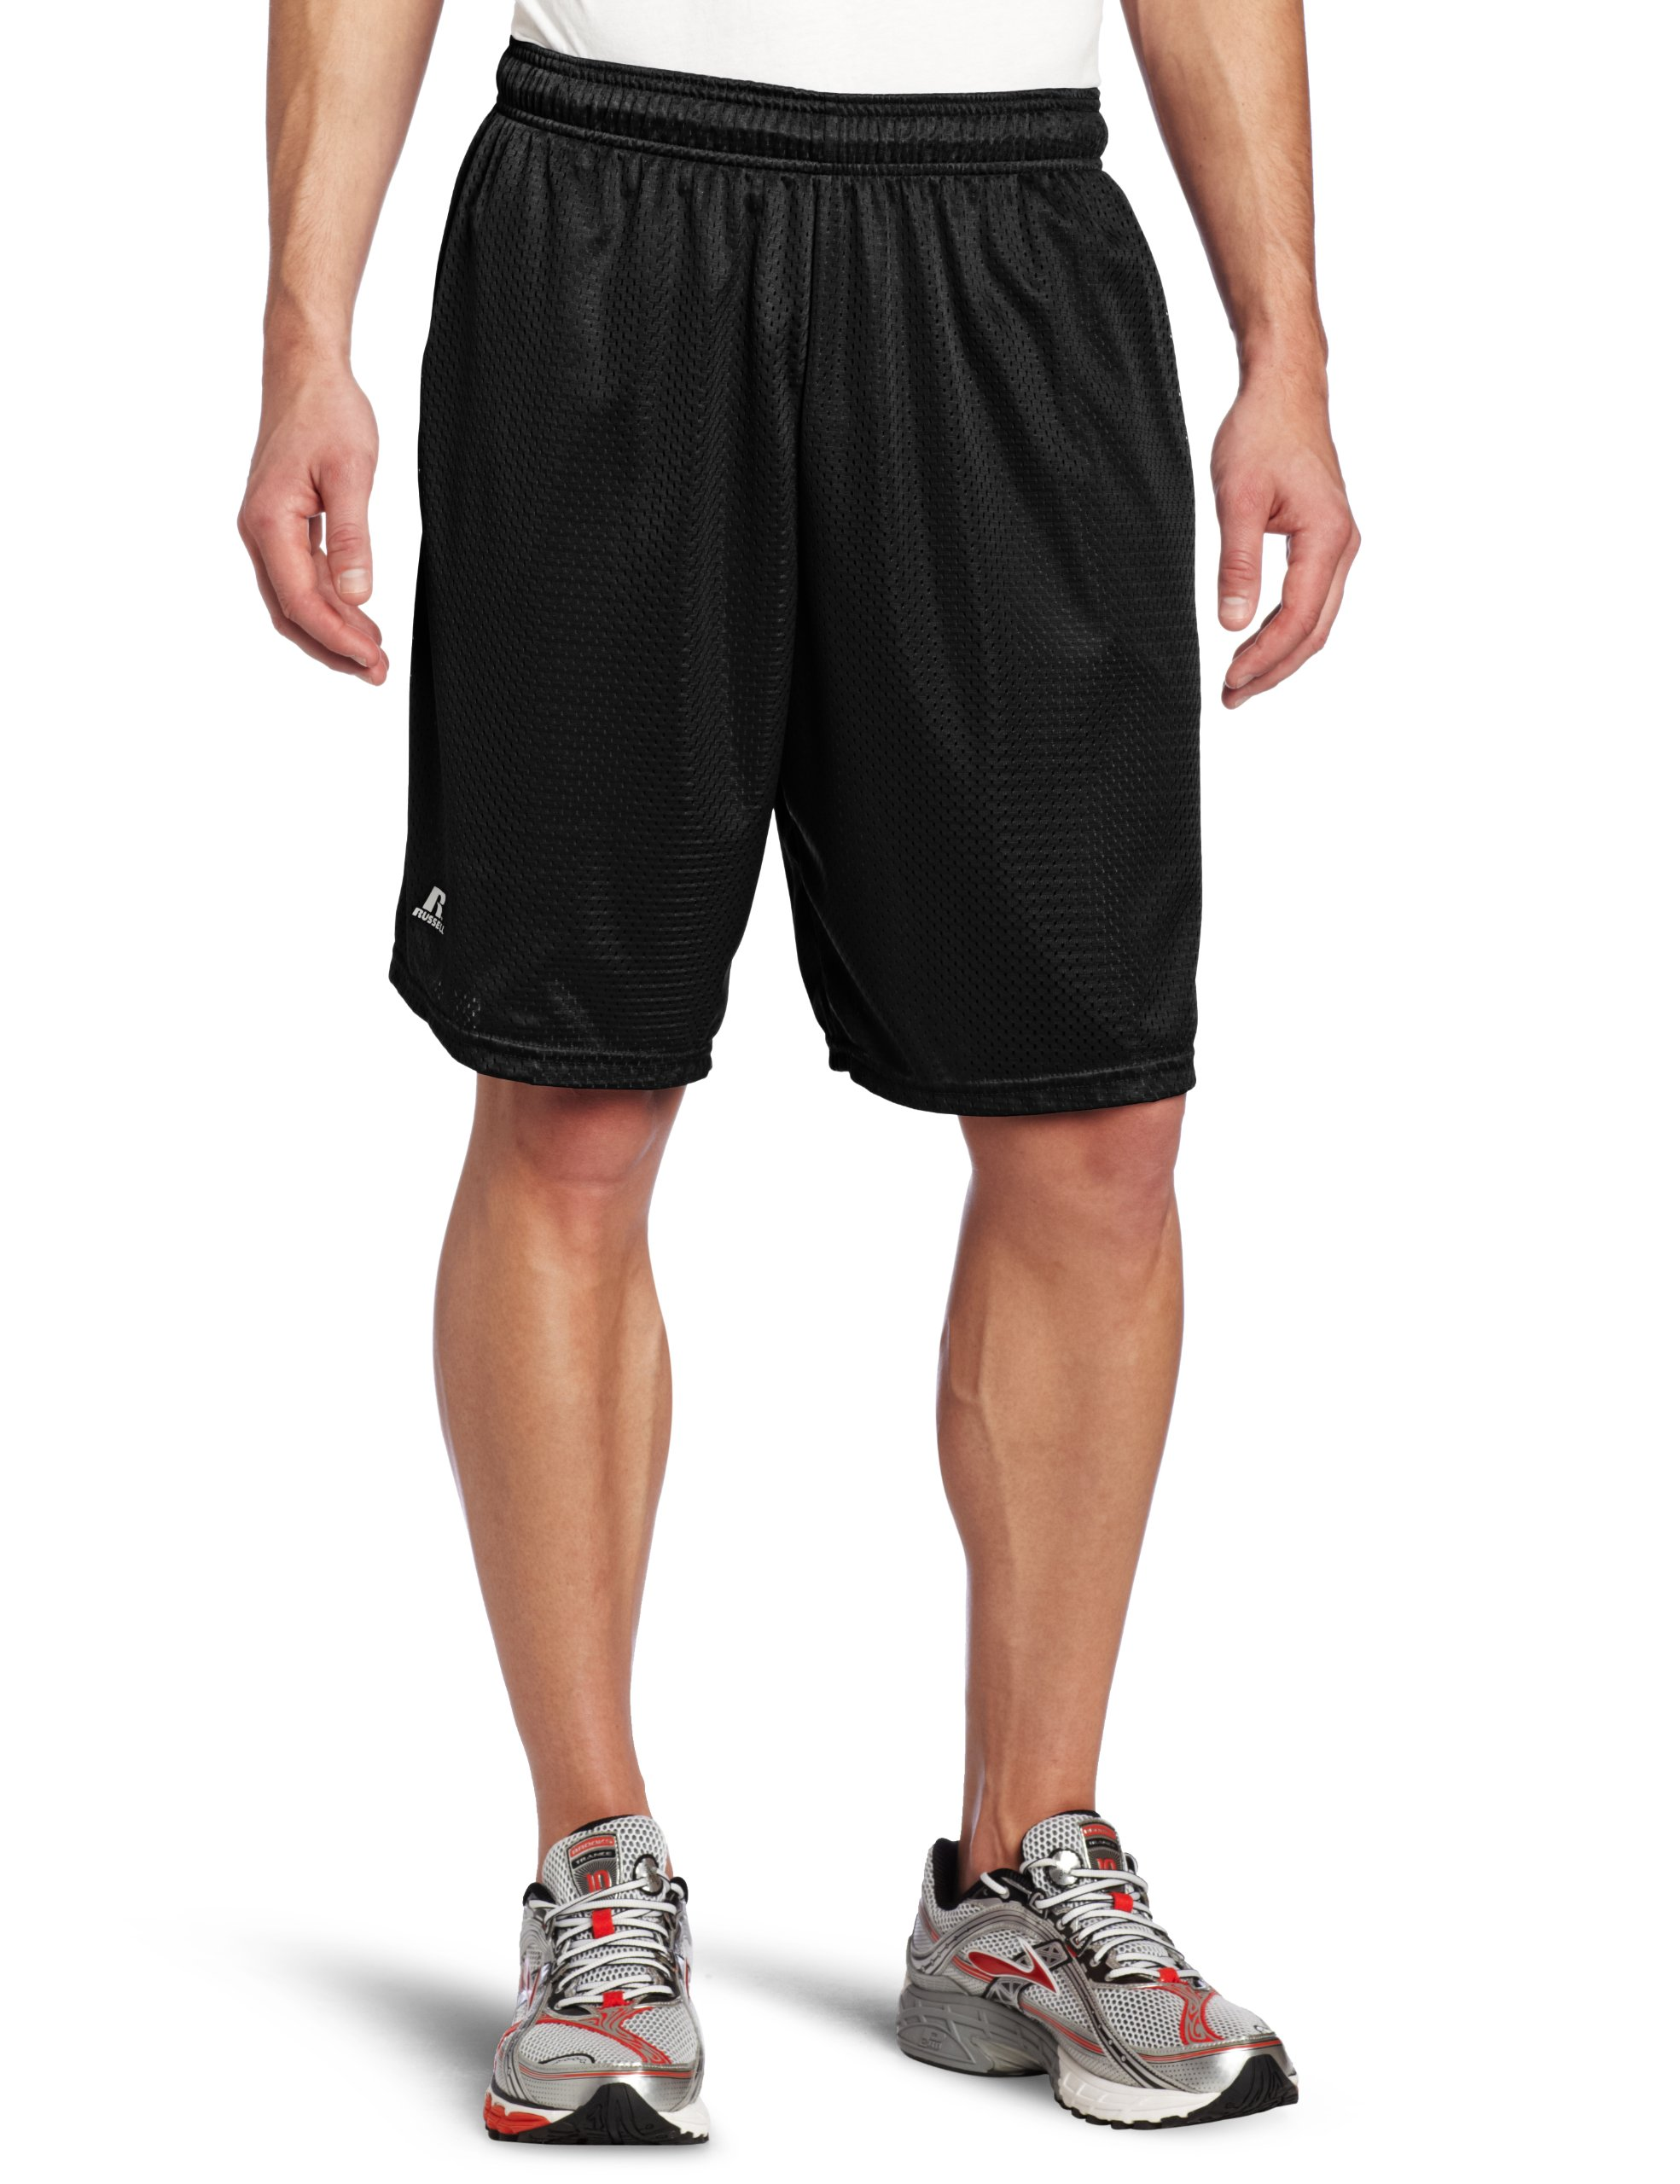 Russell Athletic Men's Mesh Short with Pockets, Black, Medium